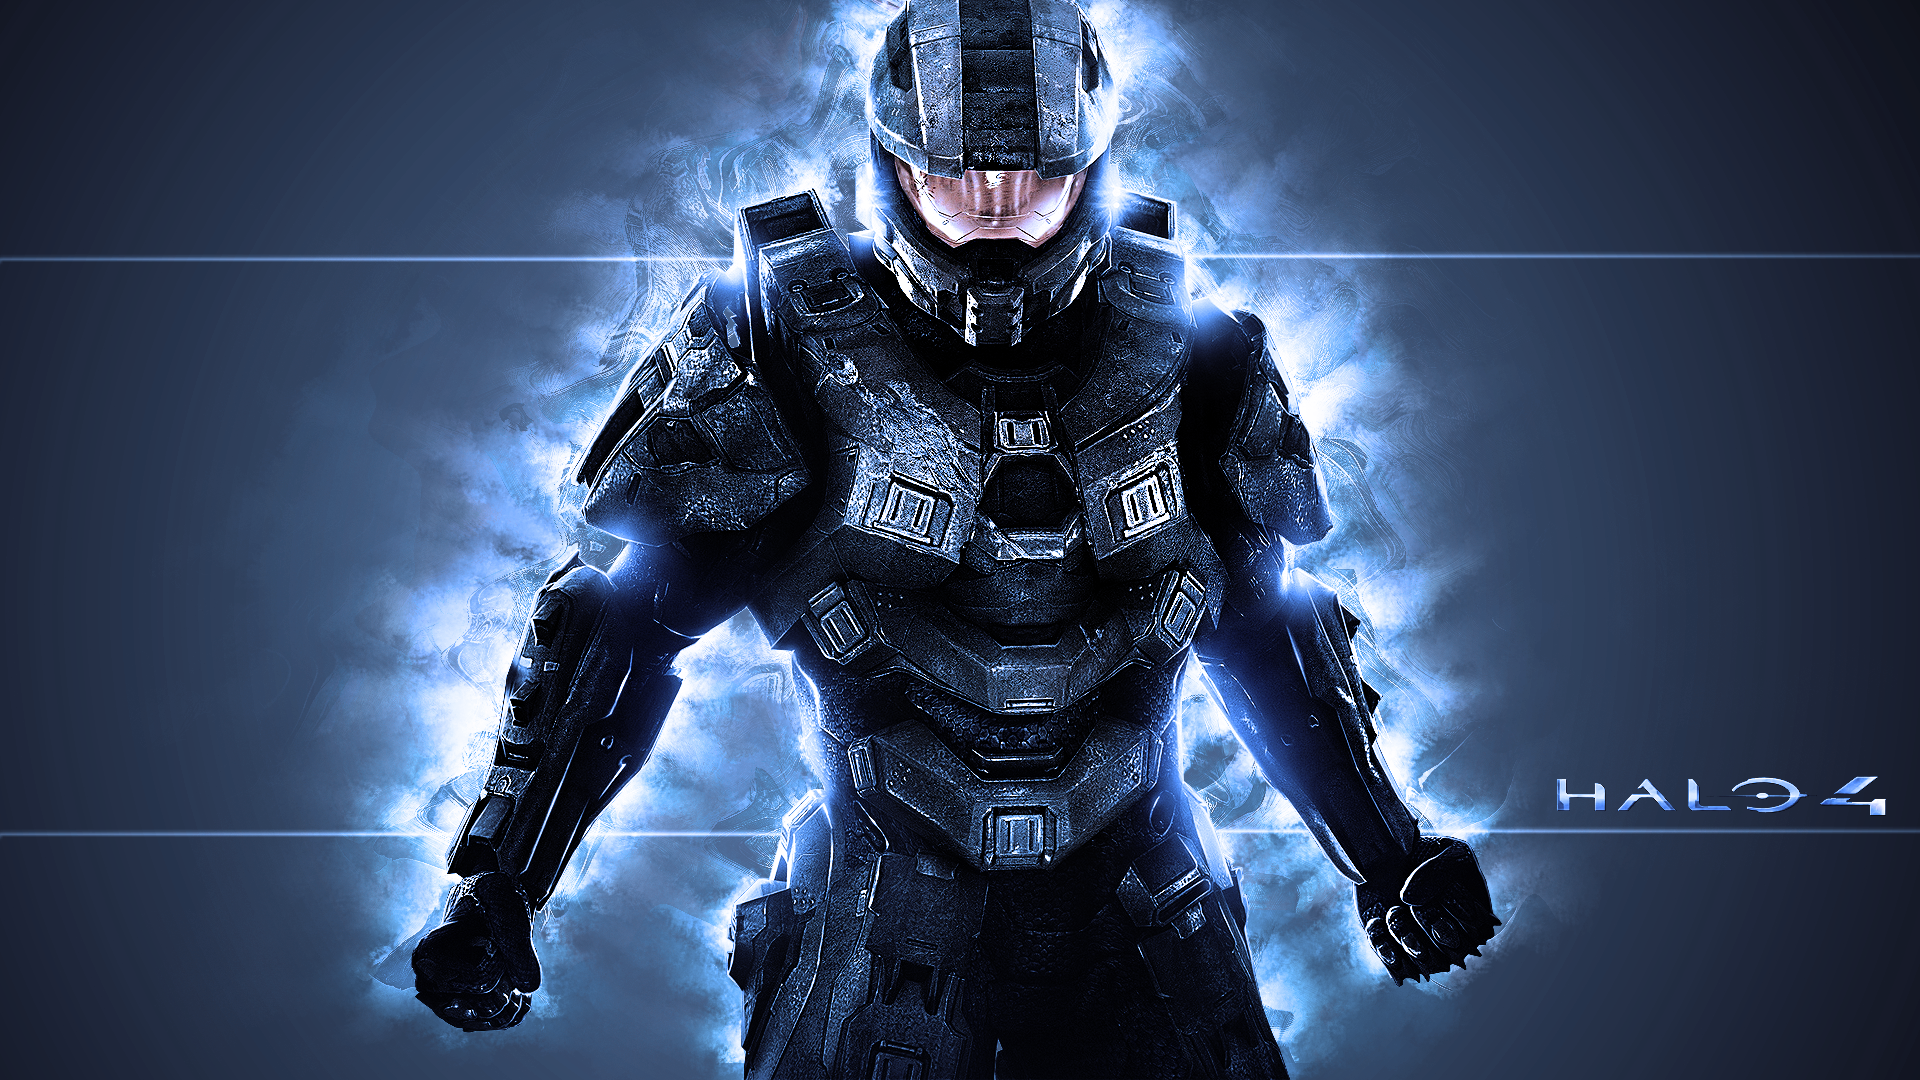 Halo 4 Wallpaper 10855 Wallpaper HDwallsizecom 1920x1080